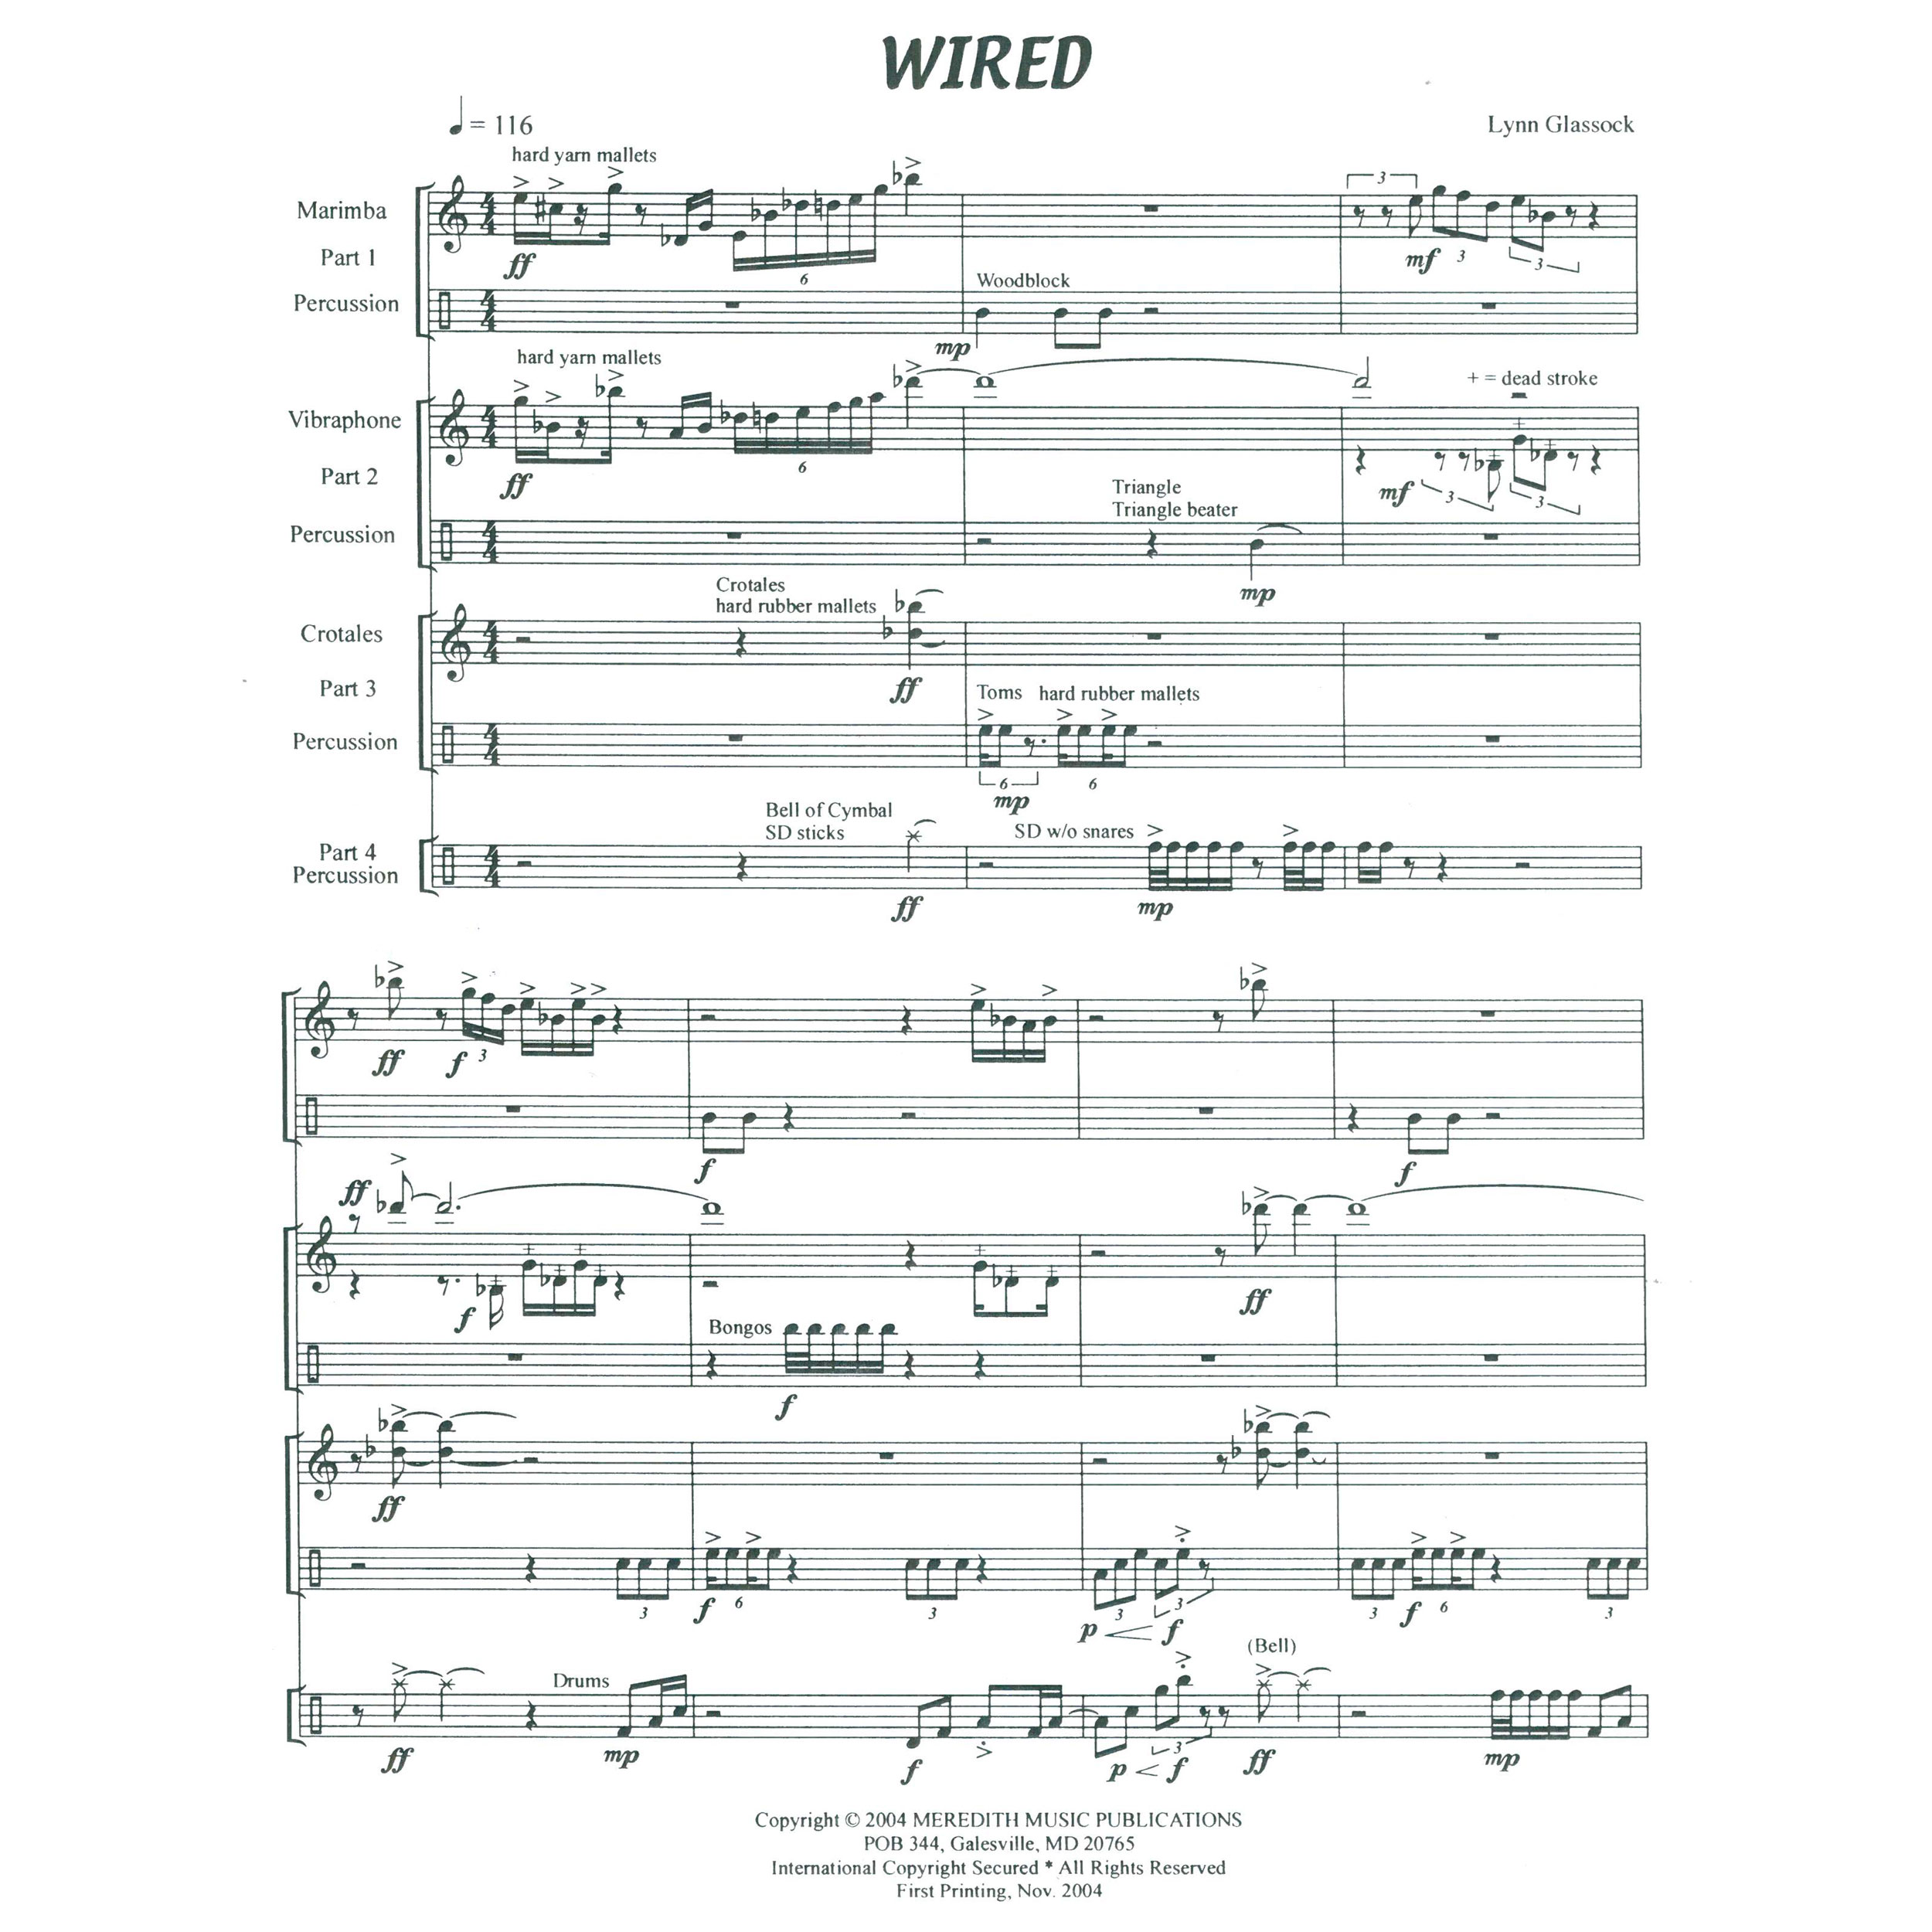 Wired by Lynn Glassock   Percussion Ensemble (Meredith Music)